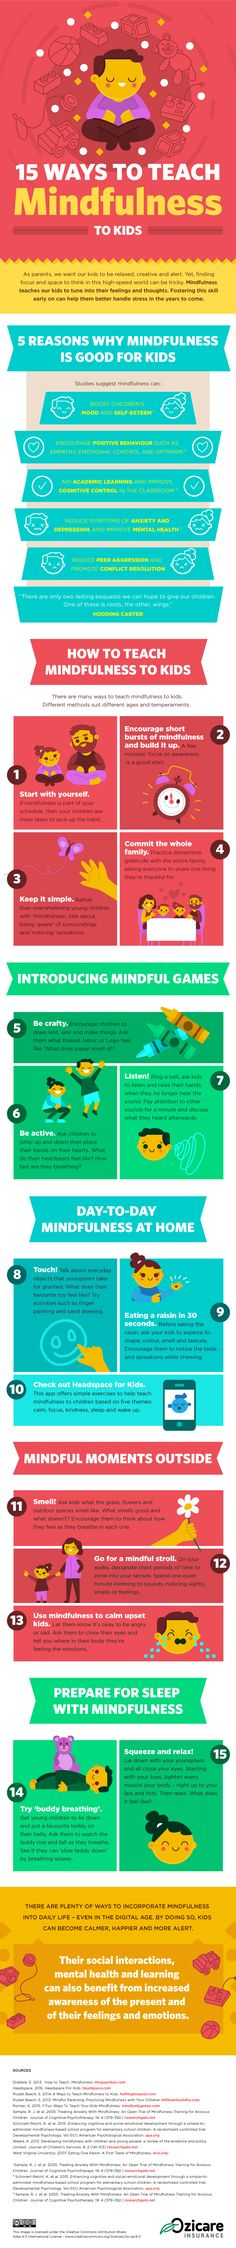 15 Ways To Teach Mindfulness To Kids Infographic - http://elearninginfographics.com/teach-mindfulness-kids-infographic/